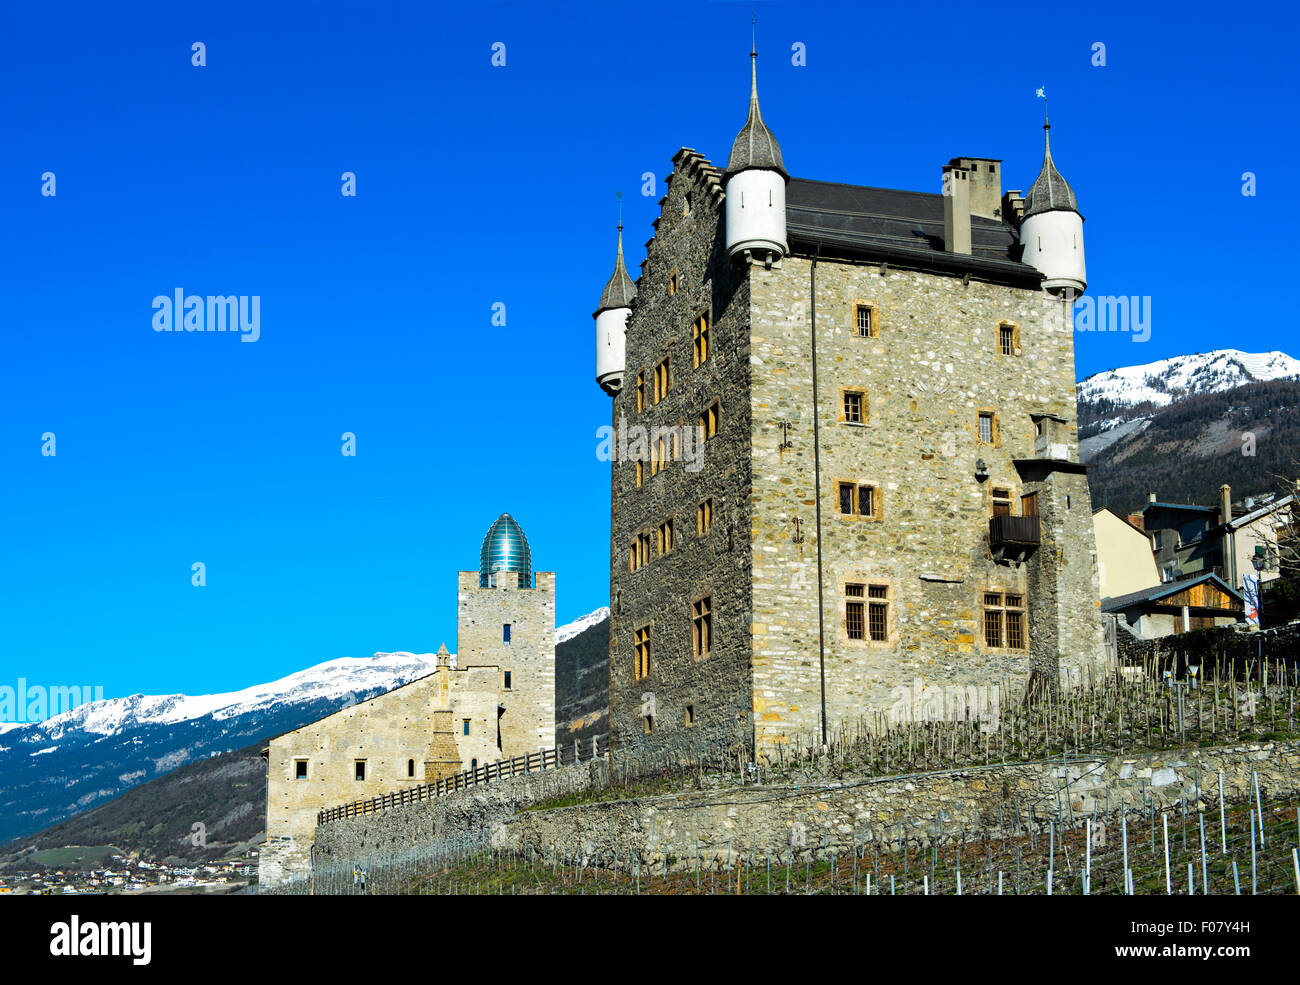 Bishop's castle and town council building, Leuk, Valais, Switzerland - Stock Image